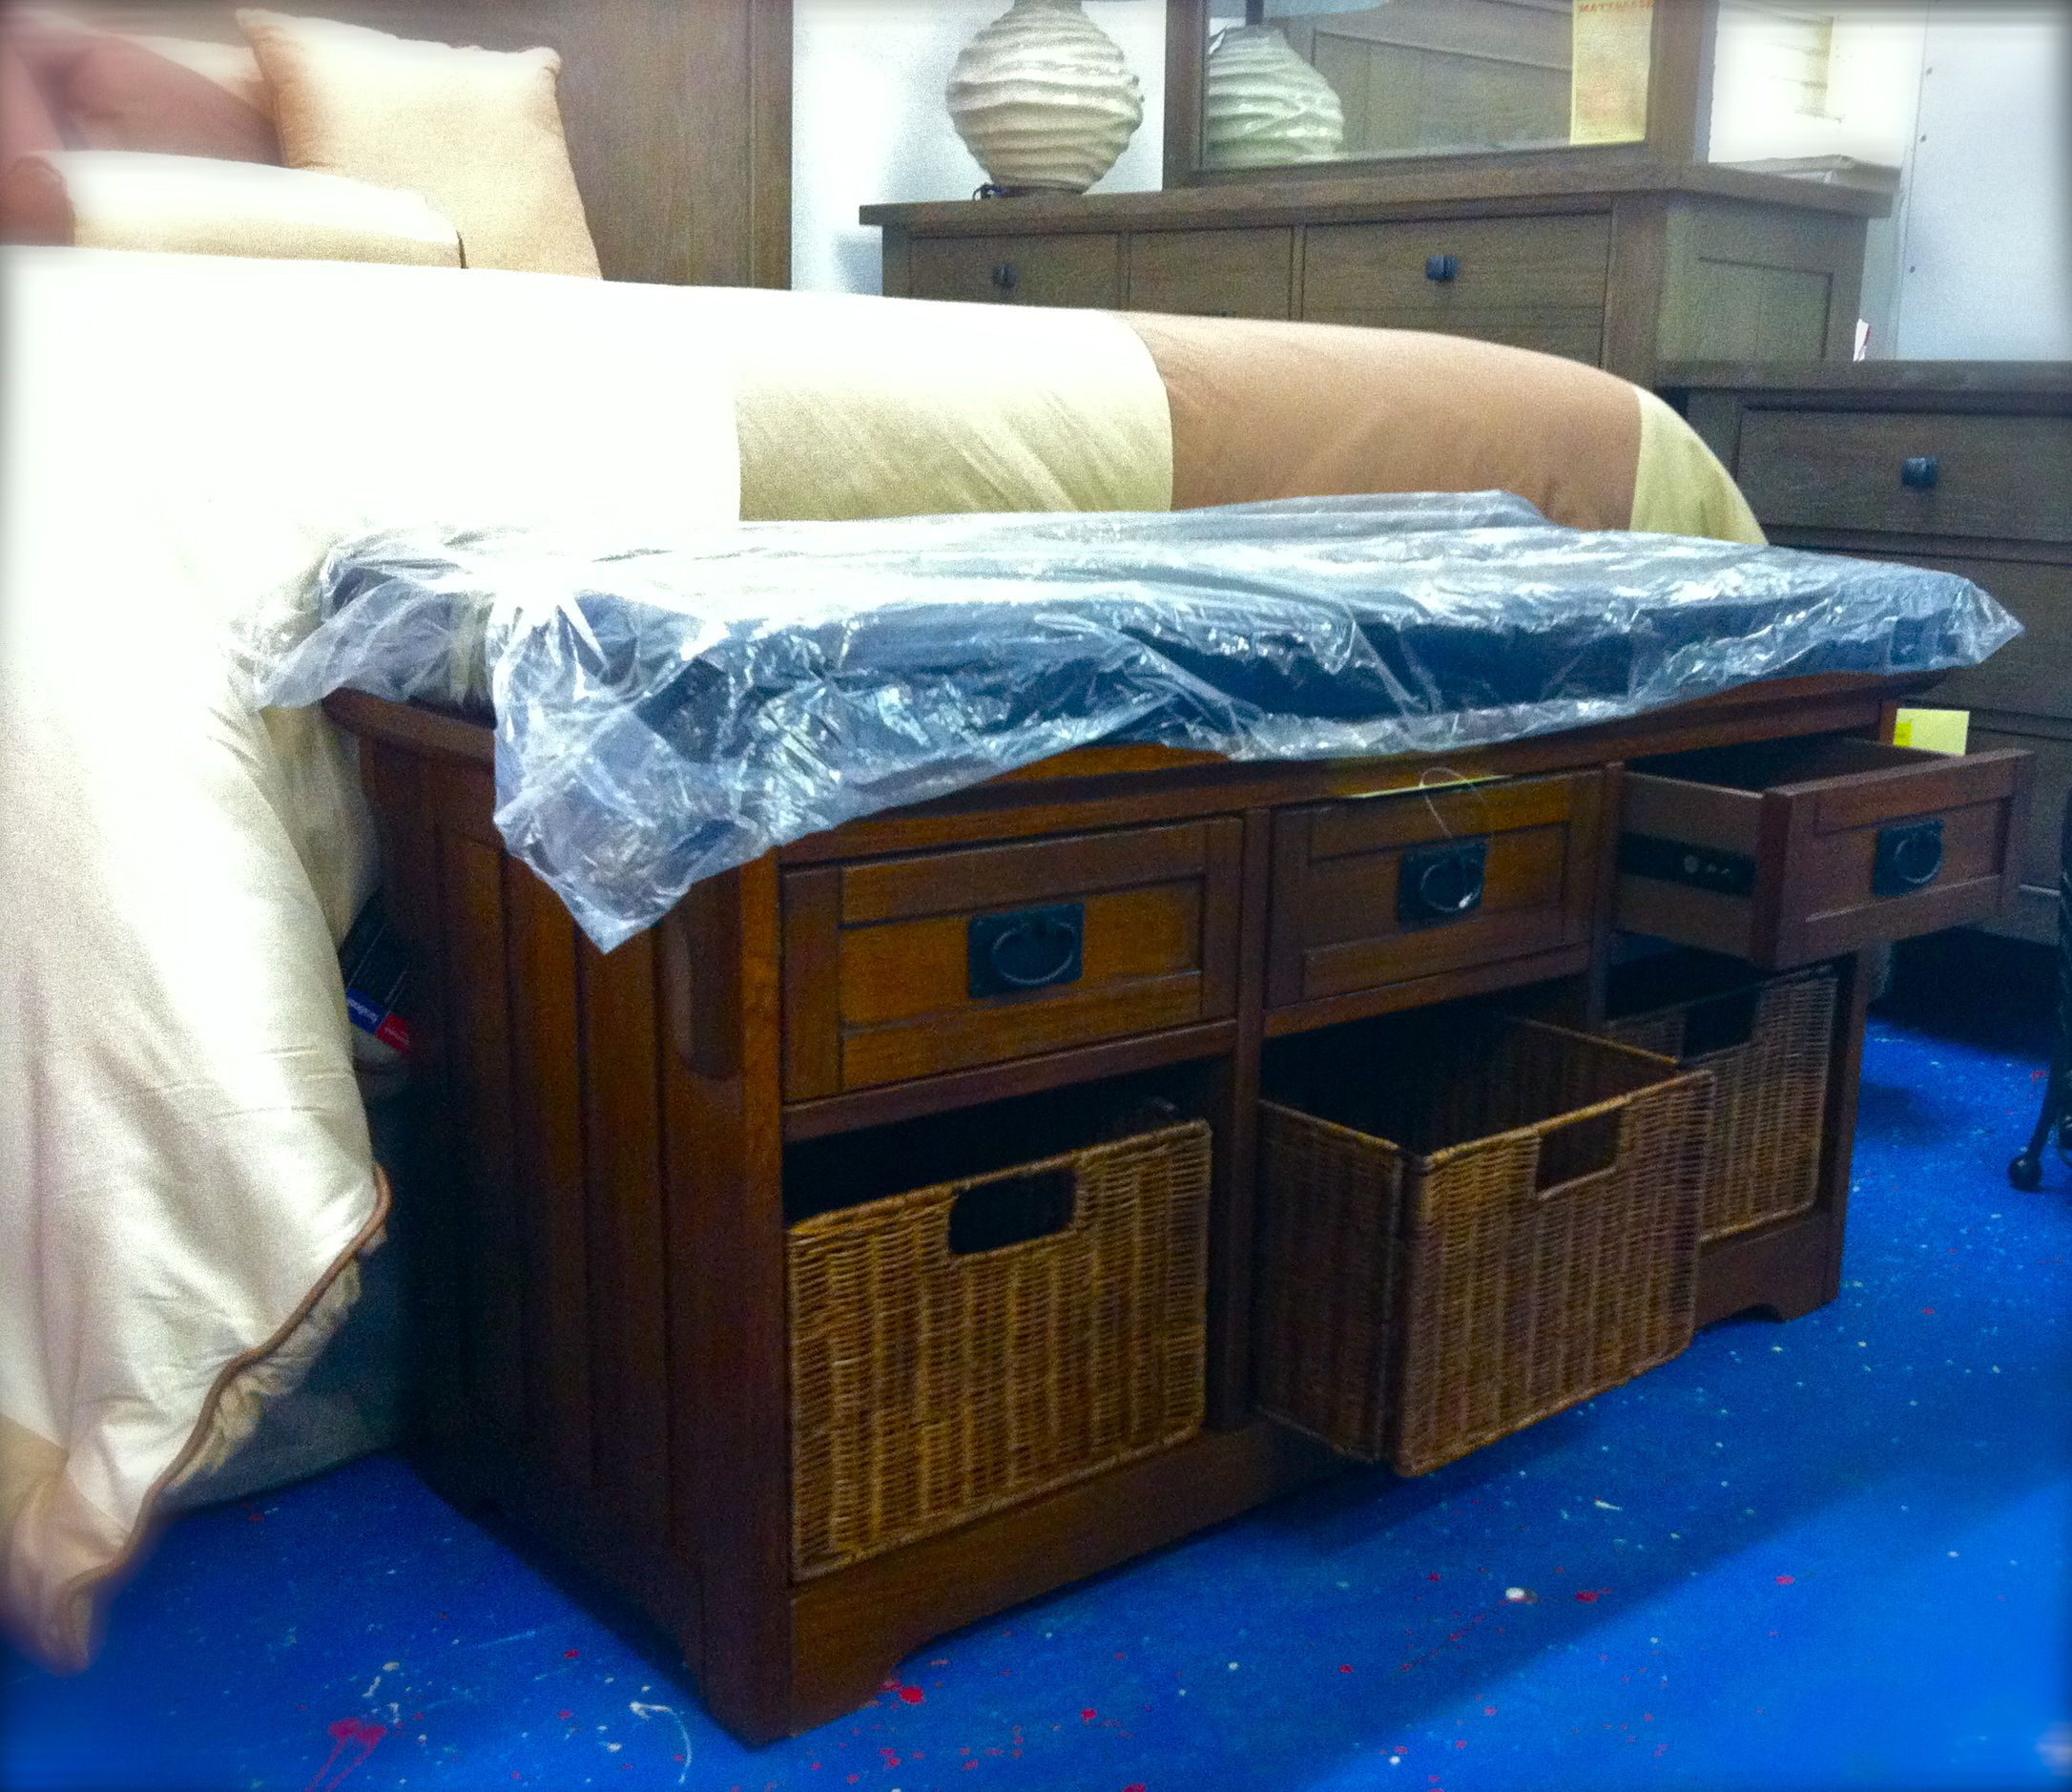 Storage solution for the bedroom. Place at the foot of the